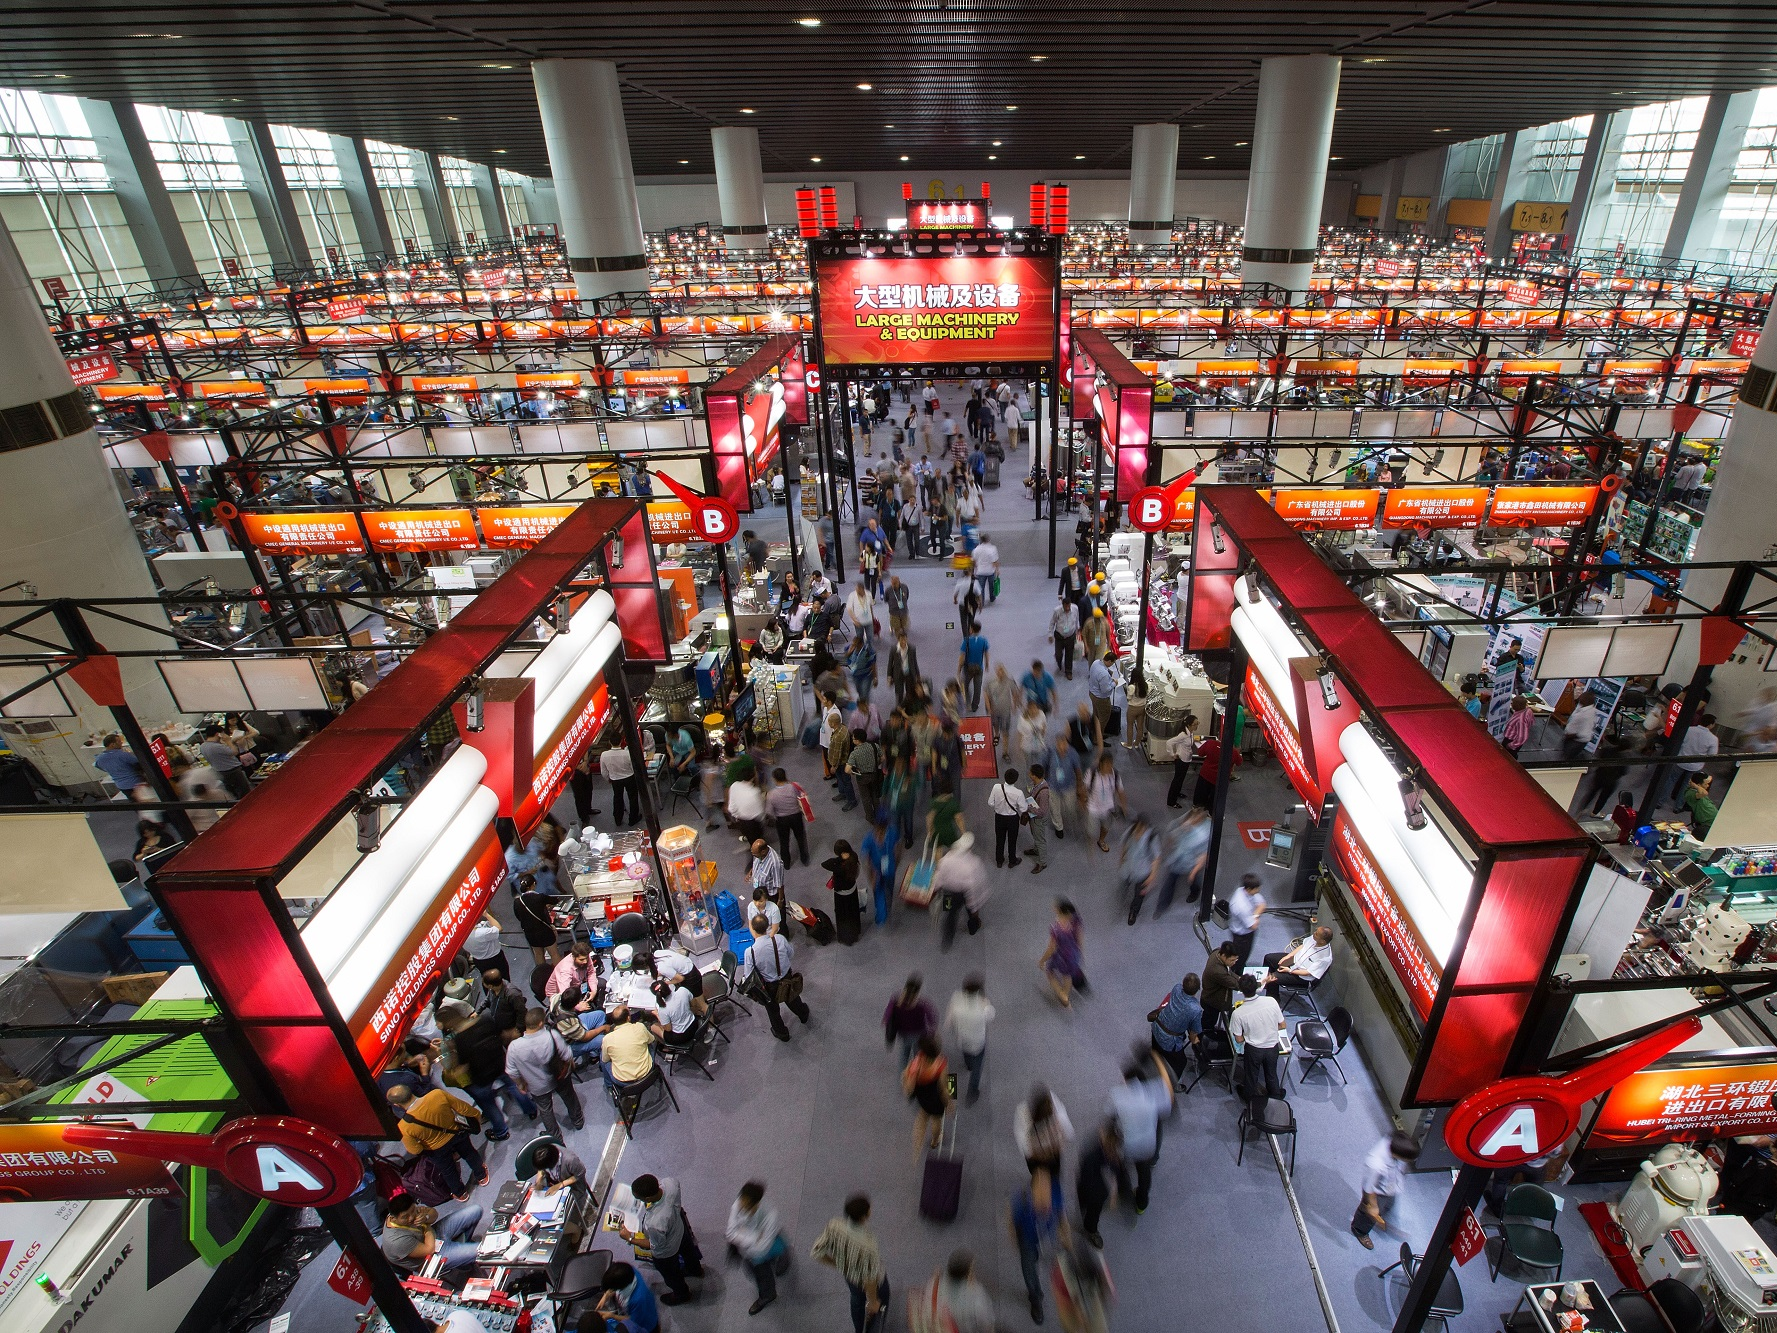 this years canton fair will feature 60475 booths and take up a total of 1185 million square meters thats the size of 71 walmart supercenters - this-years-canton-fair-will-feature-60475-booths-and-take-up-a-total-of-1185-million-square-meters--thats-the-size-of-71-walmart-supercenters